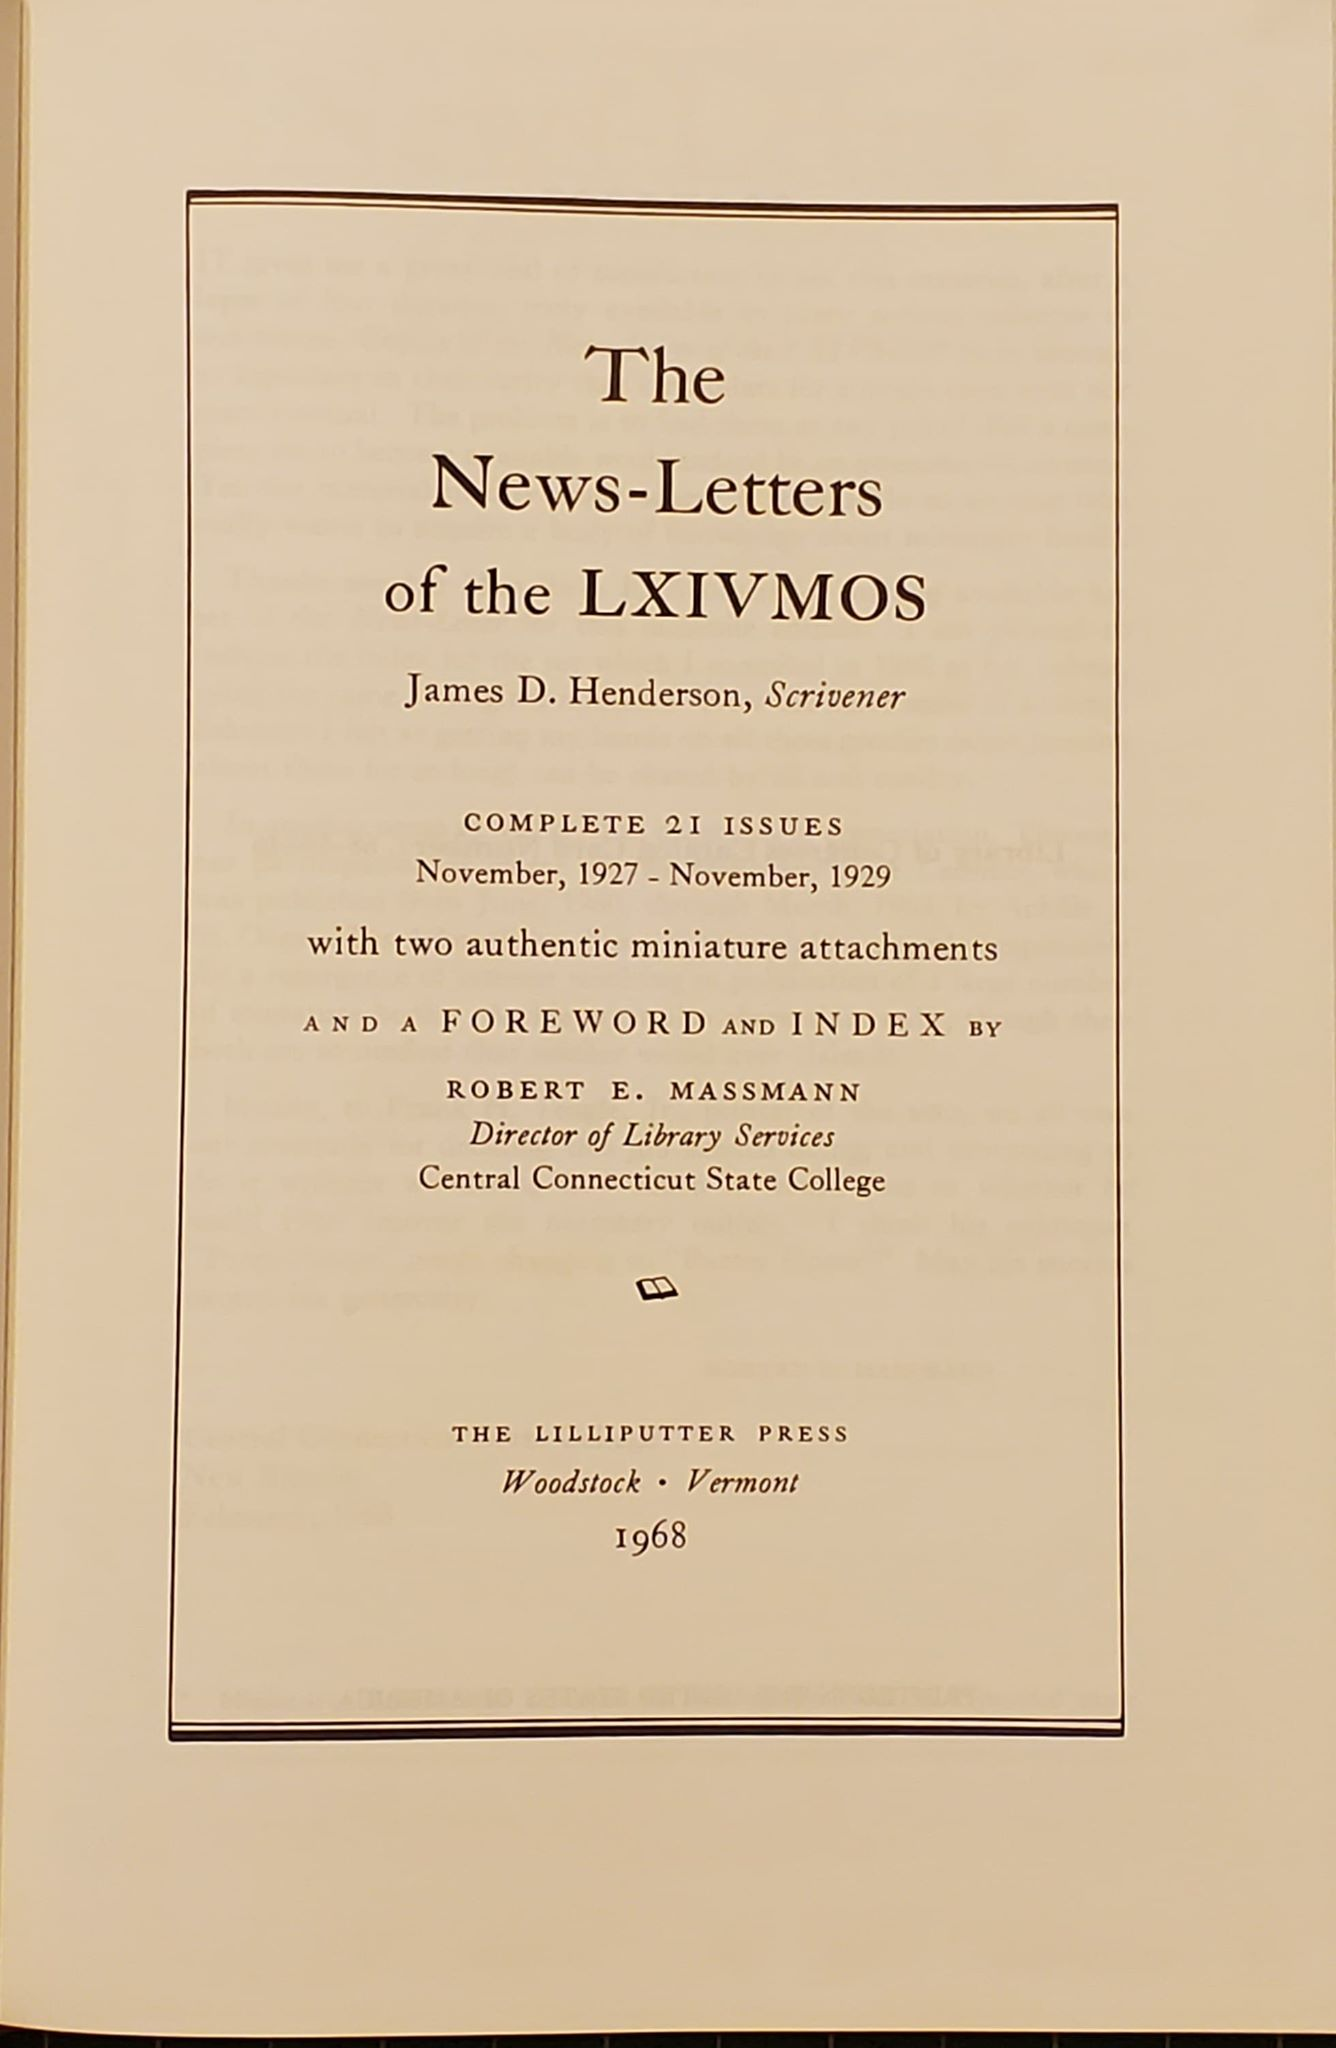 The News-Letters of the LXIVMOS